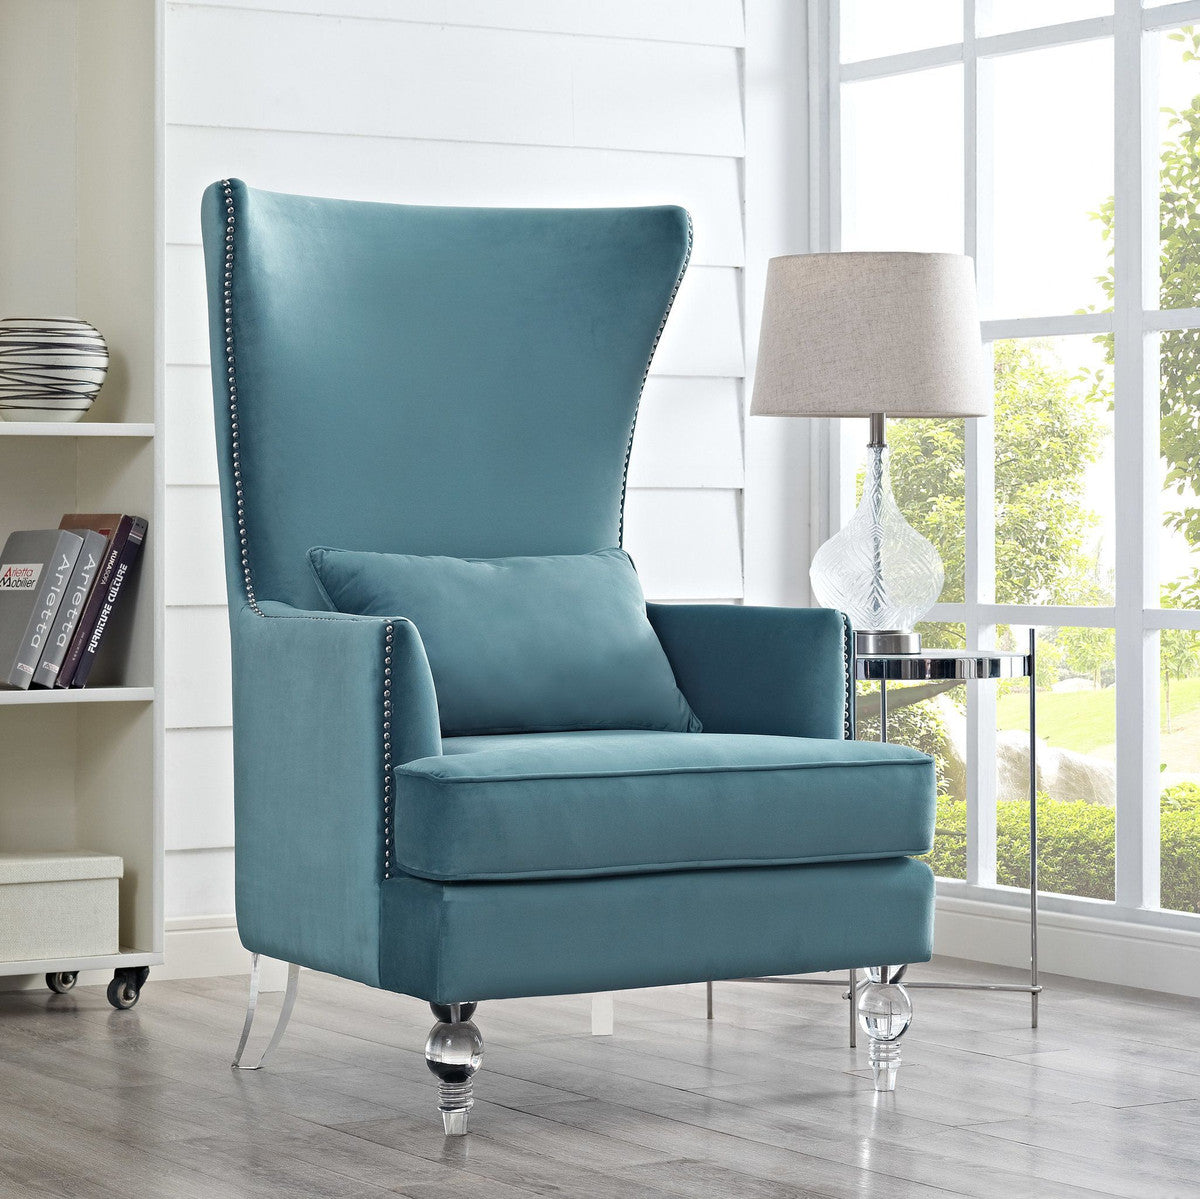 Bristol Sea Blue Velvet Chair with Lucite Legs